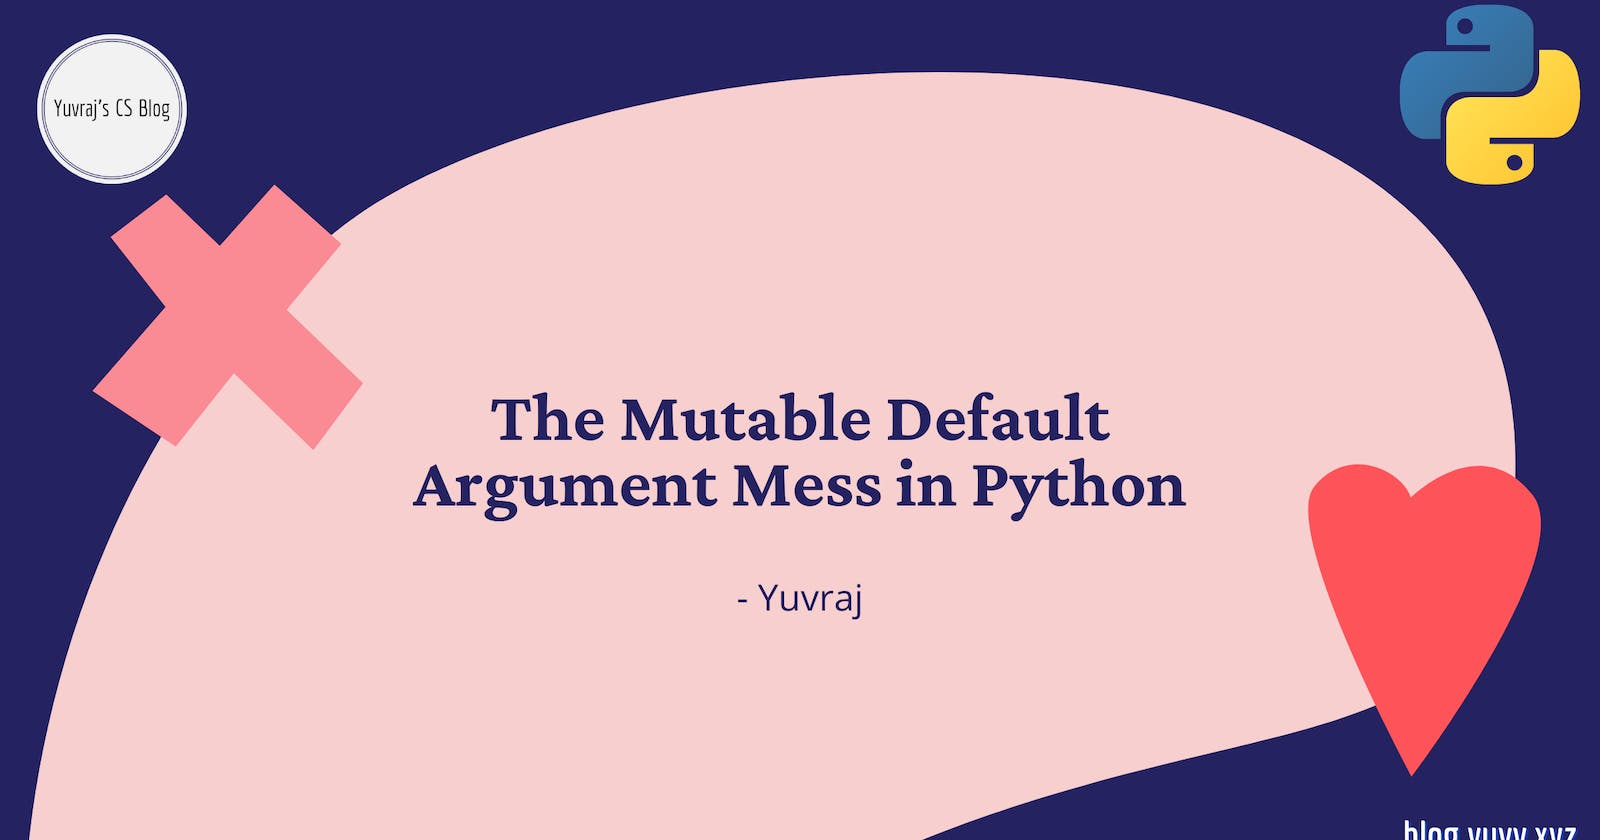 The Mutable Default Argument Mess in Python